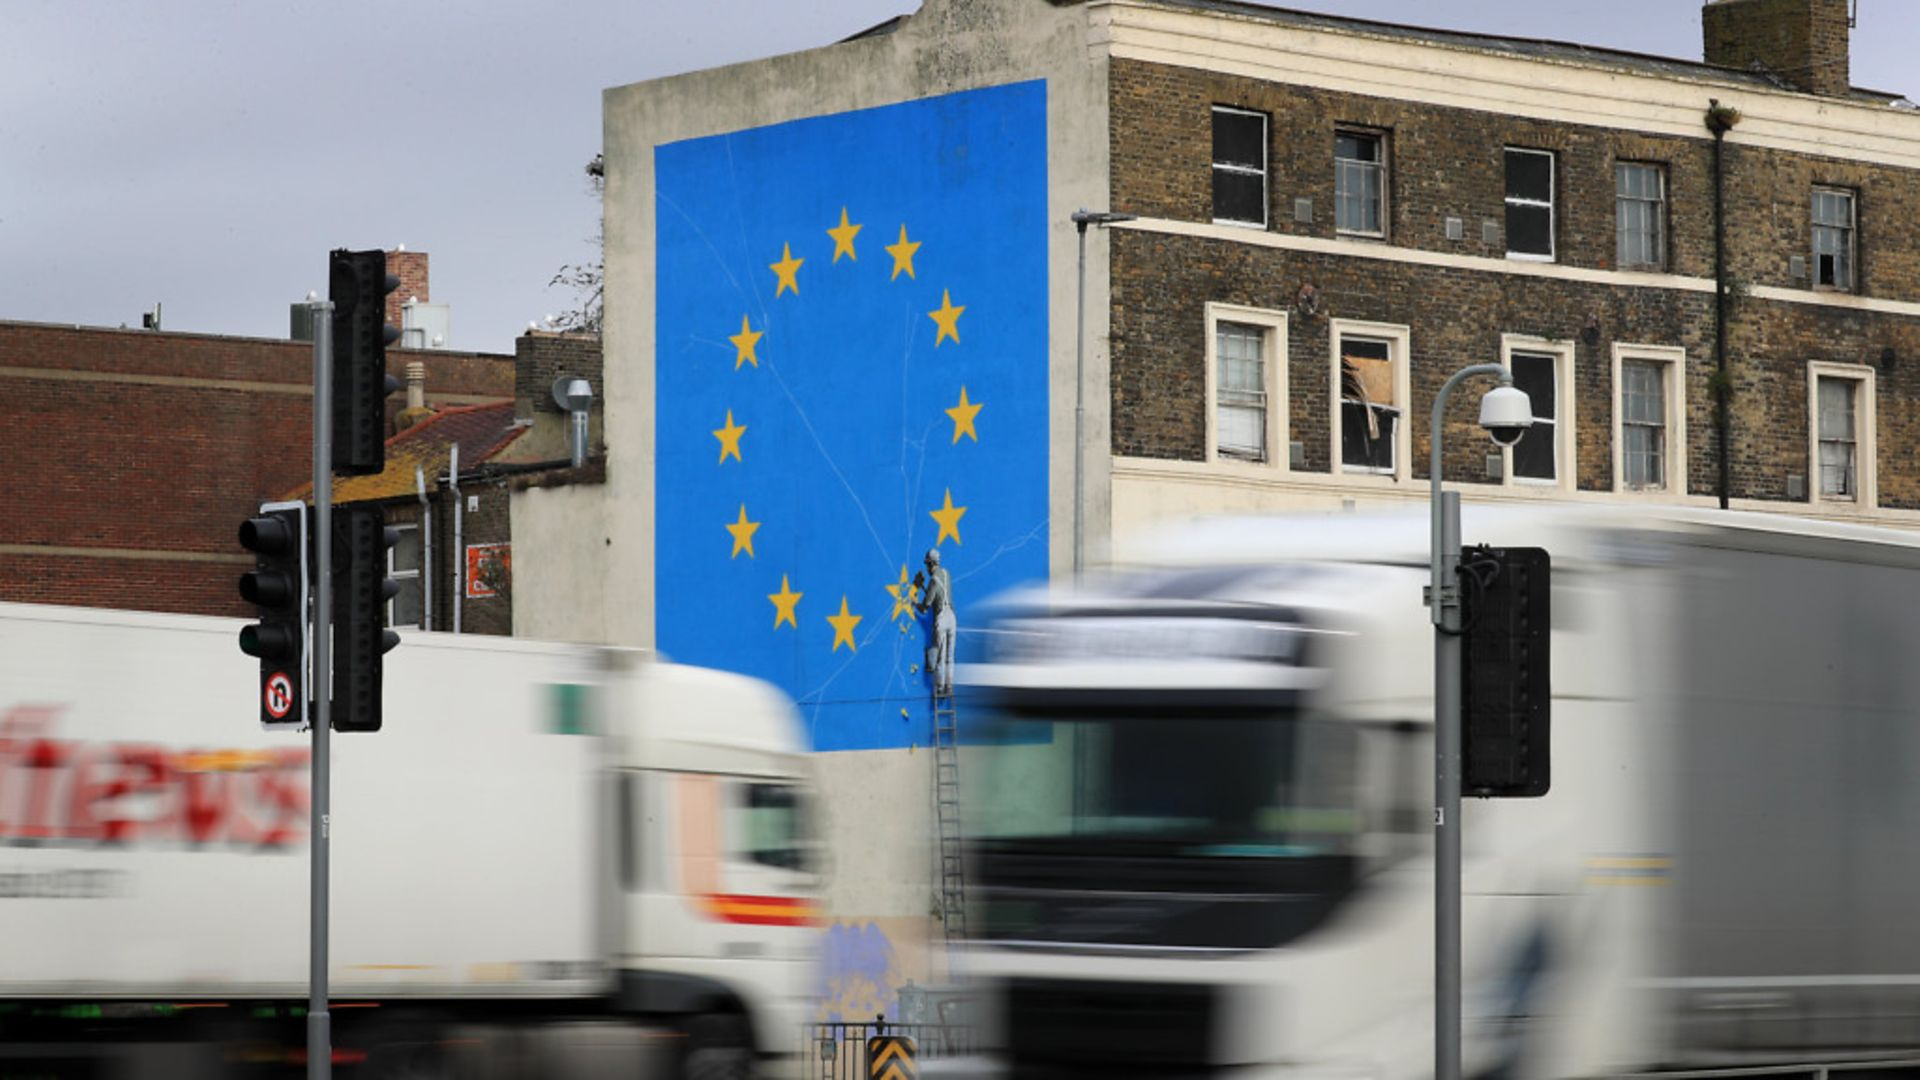 Lorries pass the Brexit-inspired mural by artist Banksy in Dover - Credit: PA Wire/PA Images